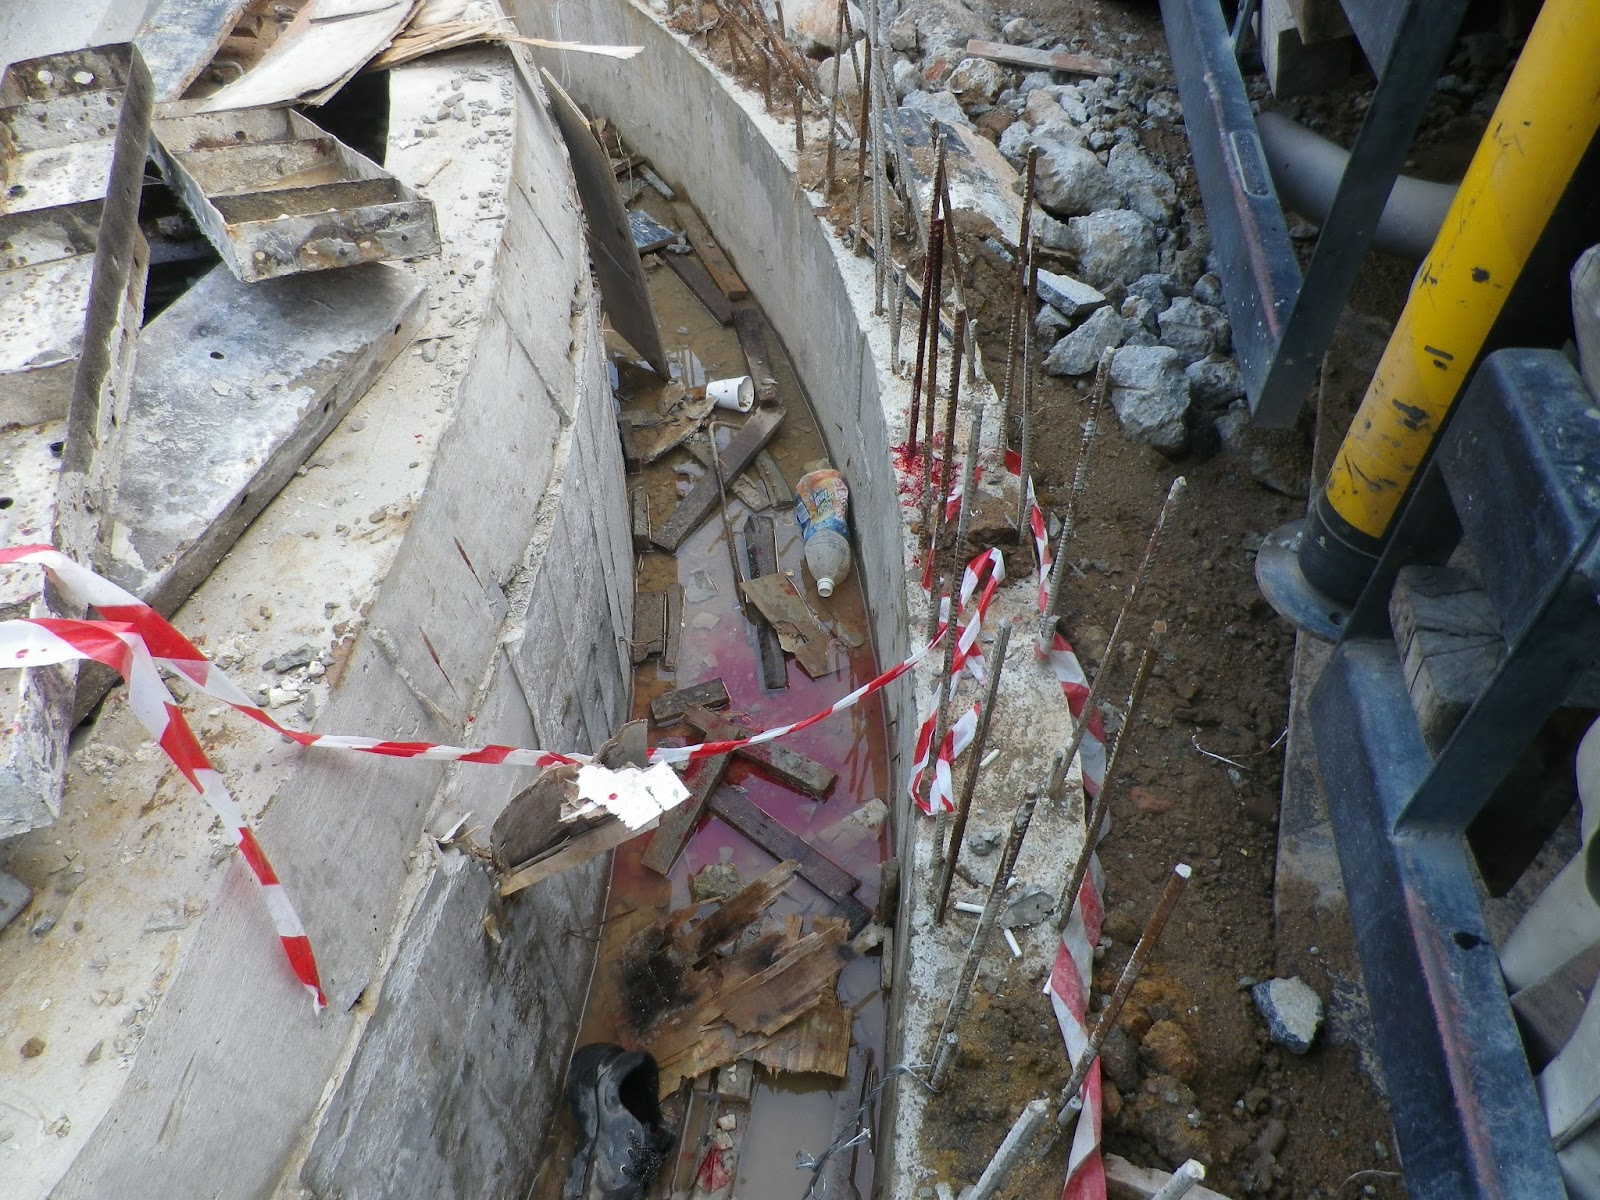 a worker tripped and fell onto the rebars the rebars caused injury to the next fortunately the worker rebar worker